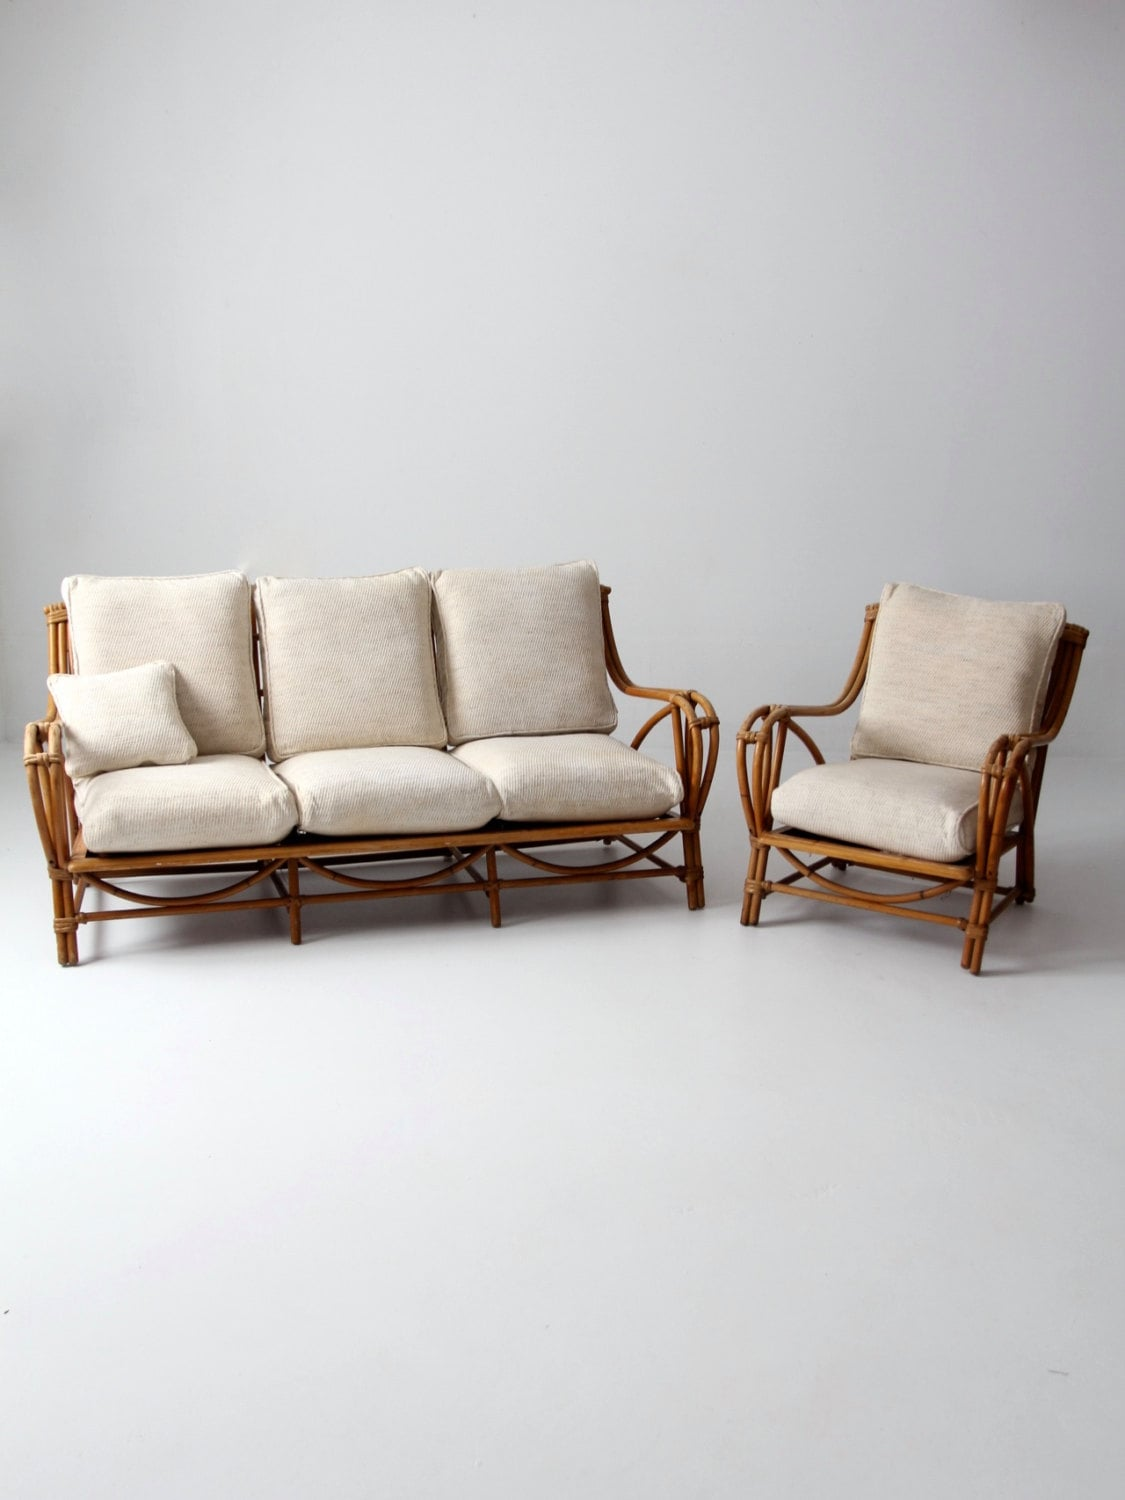 Vintage rattan furniture set couch and chair bamboo with for Seat covers for cane furniture